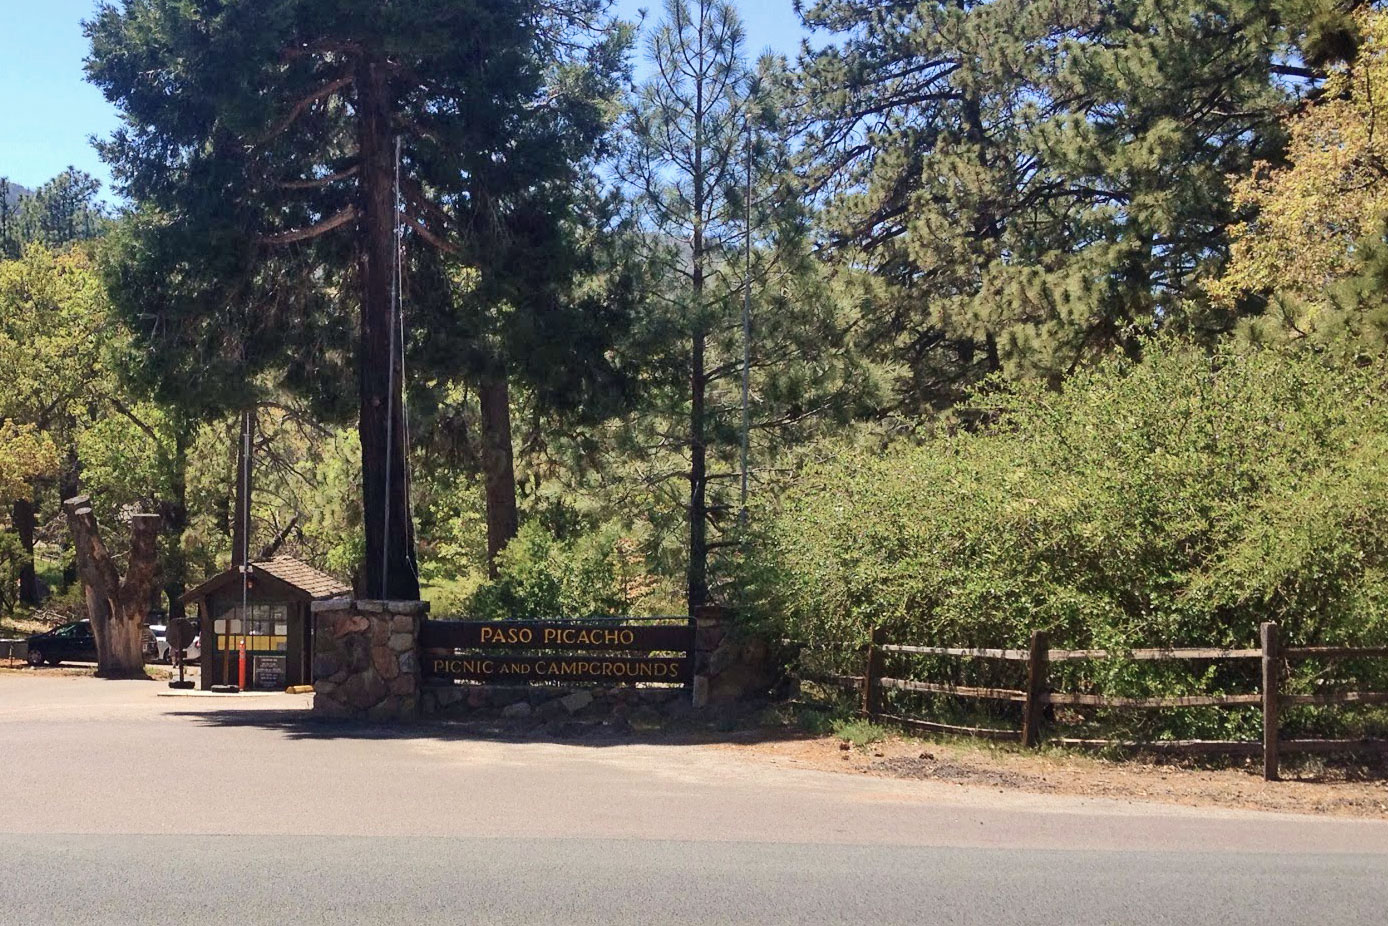 Cuyamaca Paso Picacho Campground